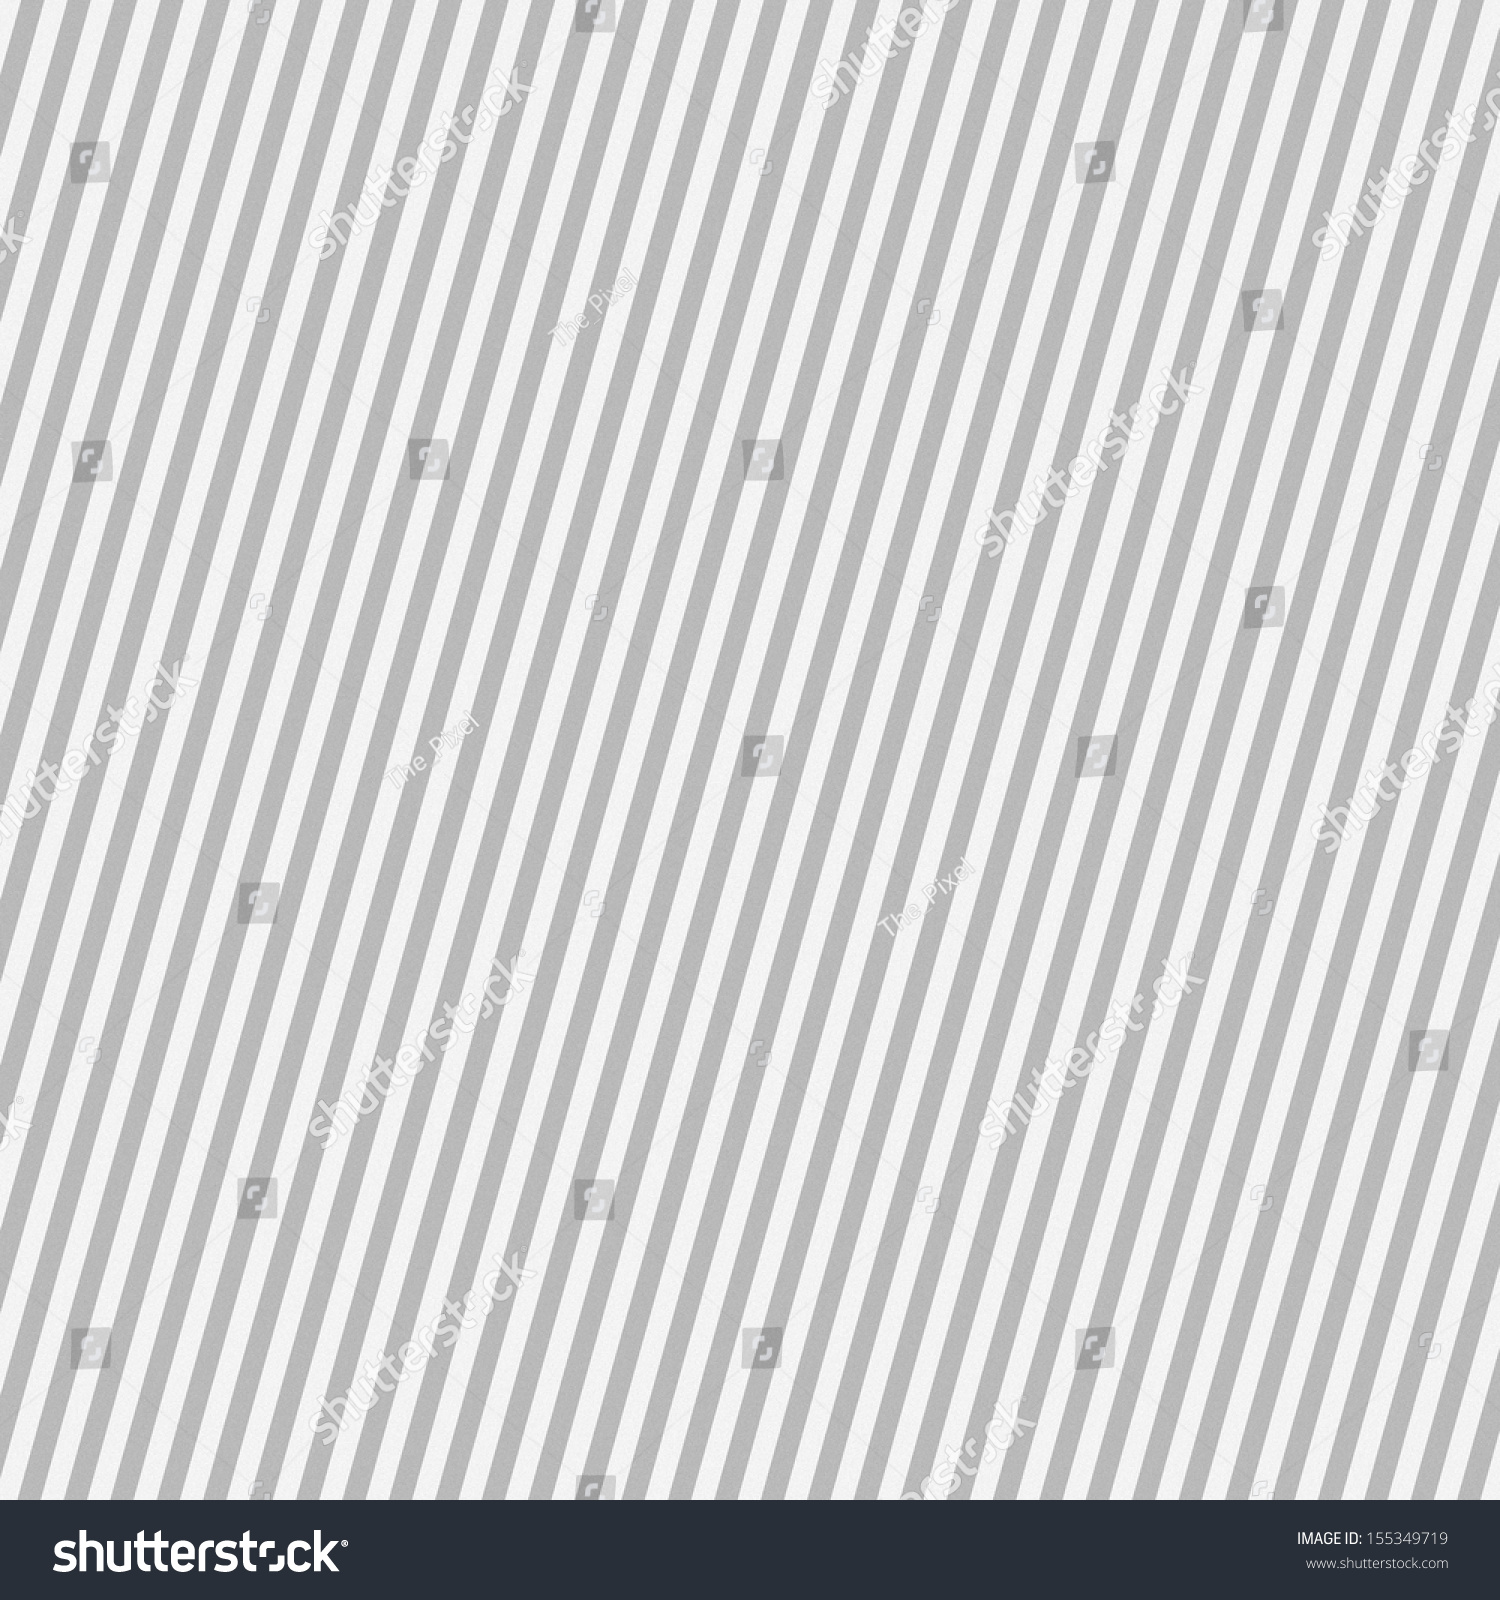 Gray and white striped wallpaper - Grey White Striped Paper Background Abstract Design Texture High Resolution Wallpaper